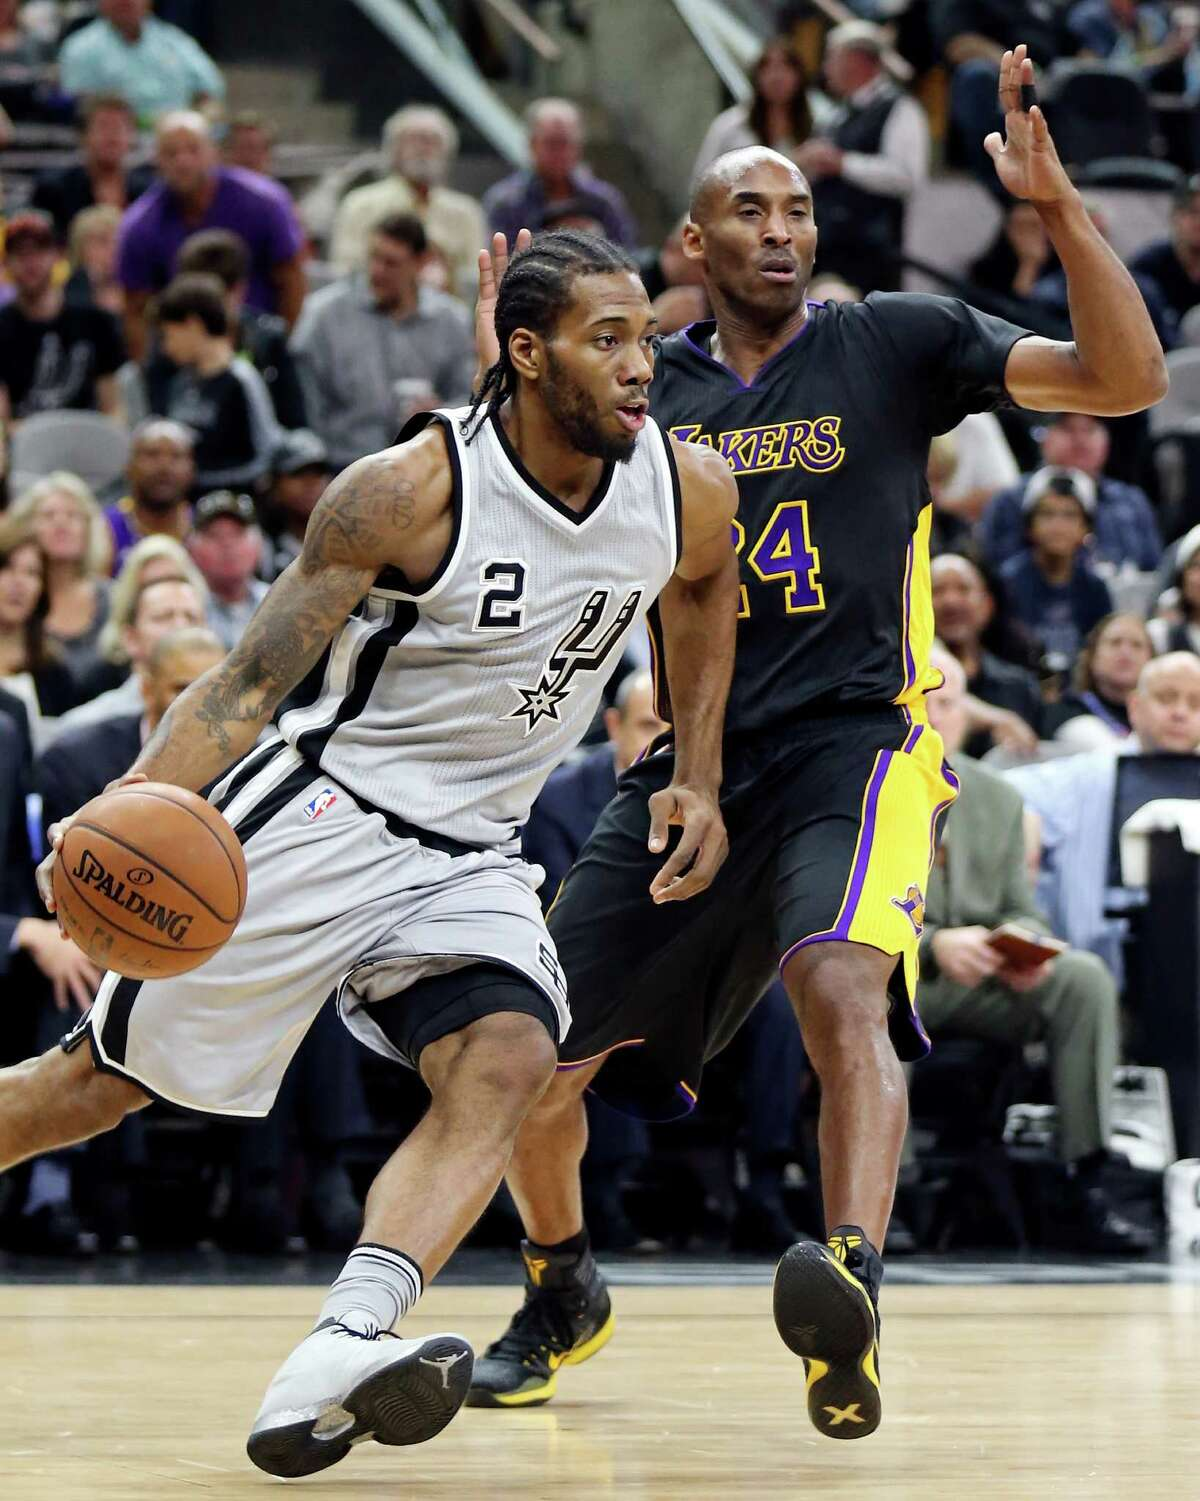 San Antonio Spurs' Kawhi Leonard drives around Los Angeles Lakers' Kobe Bryant during first half action Friday Dec. 11, 2015 at the AT&T Center.